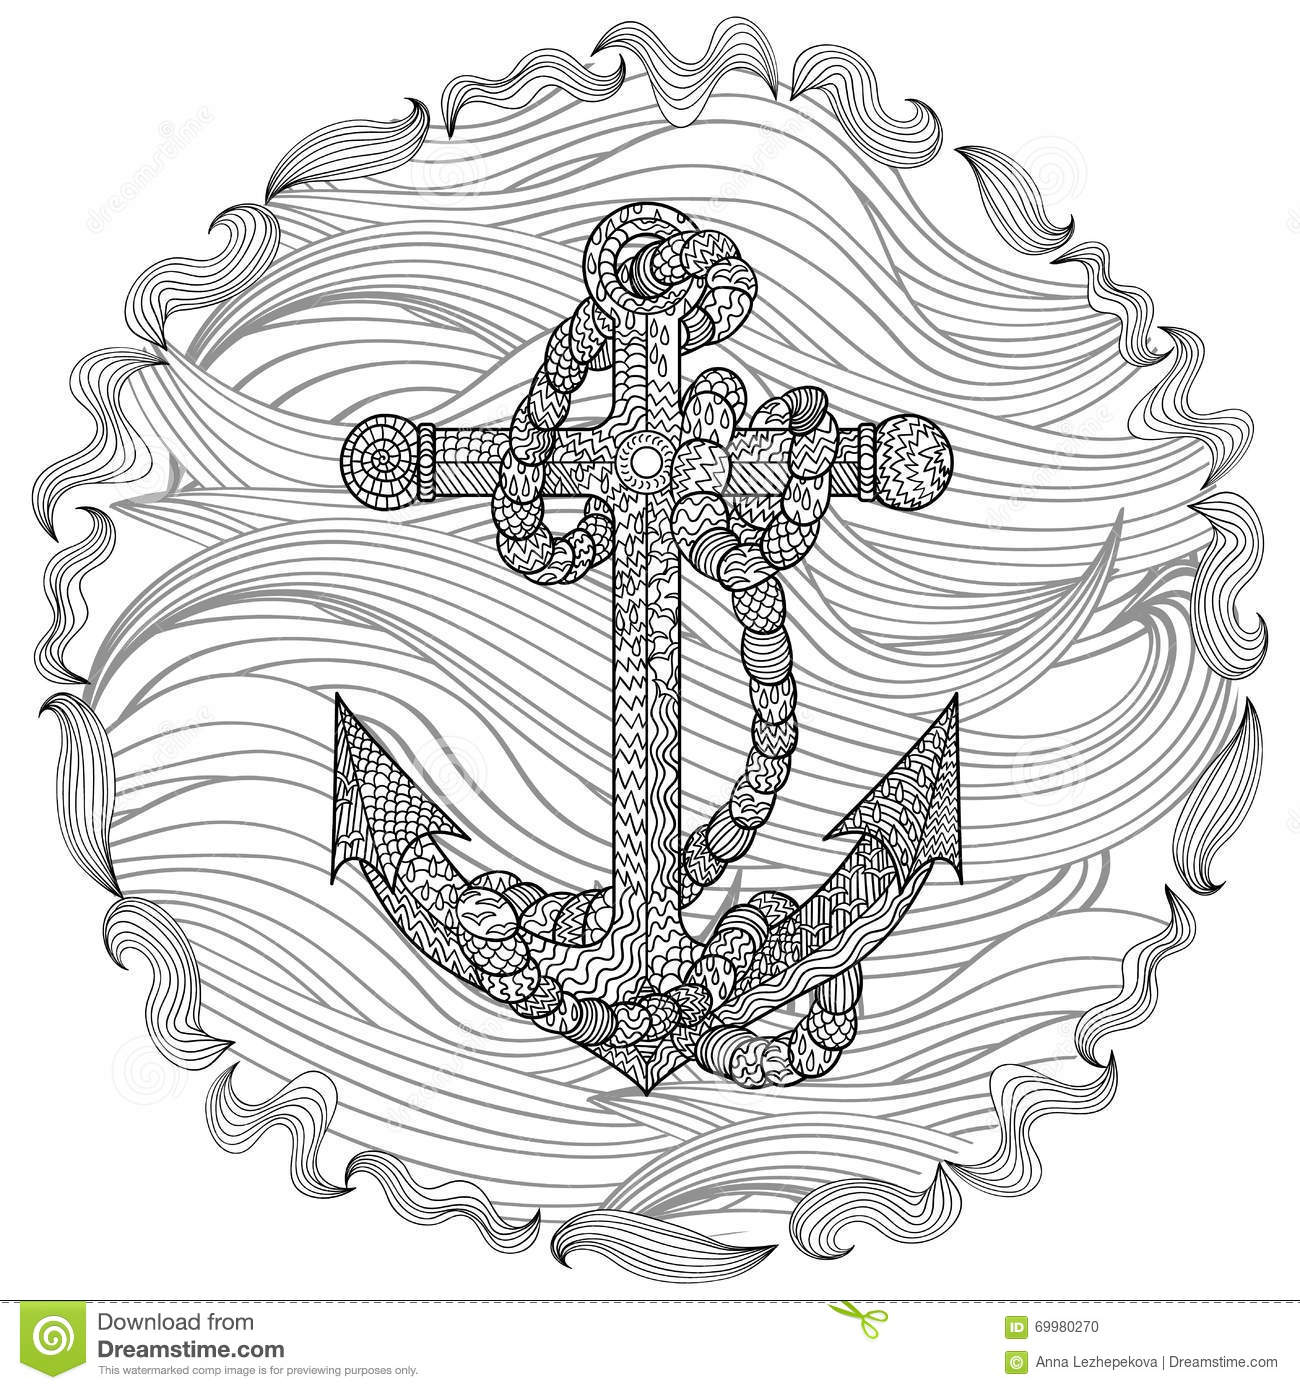 Illustration Of An Anchor And Rope In The Zentangle Style Sketch For Tattoo Poster Print T Shirt Zendoodle Adult Antistress Coloring Page